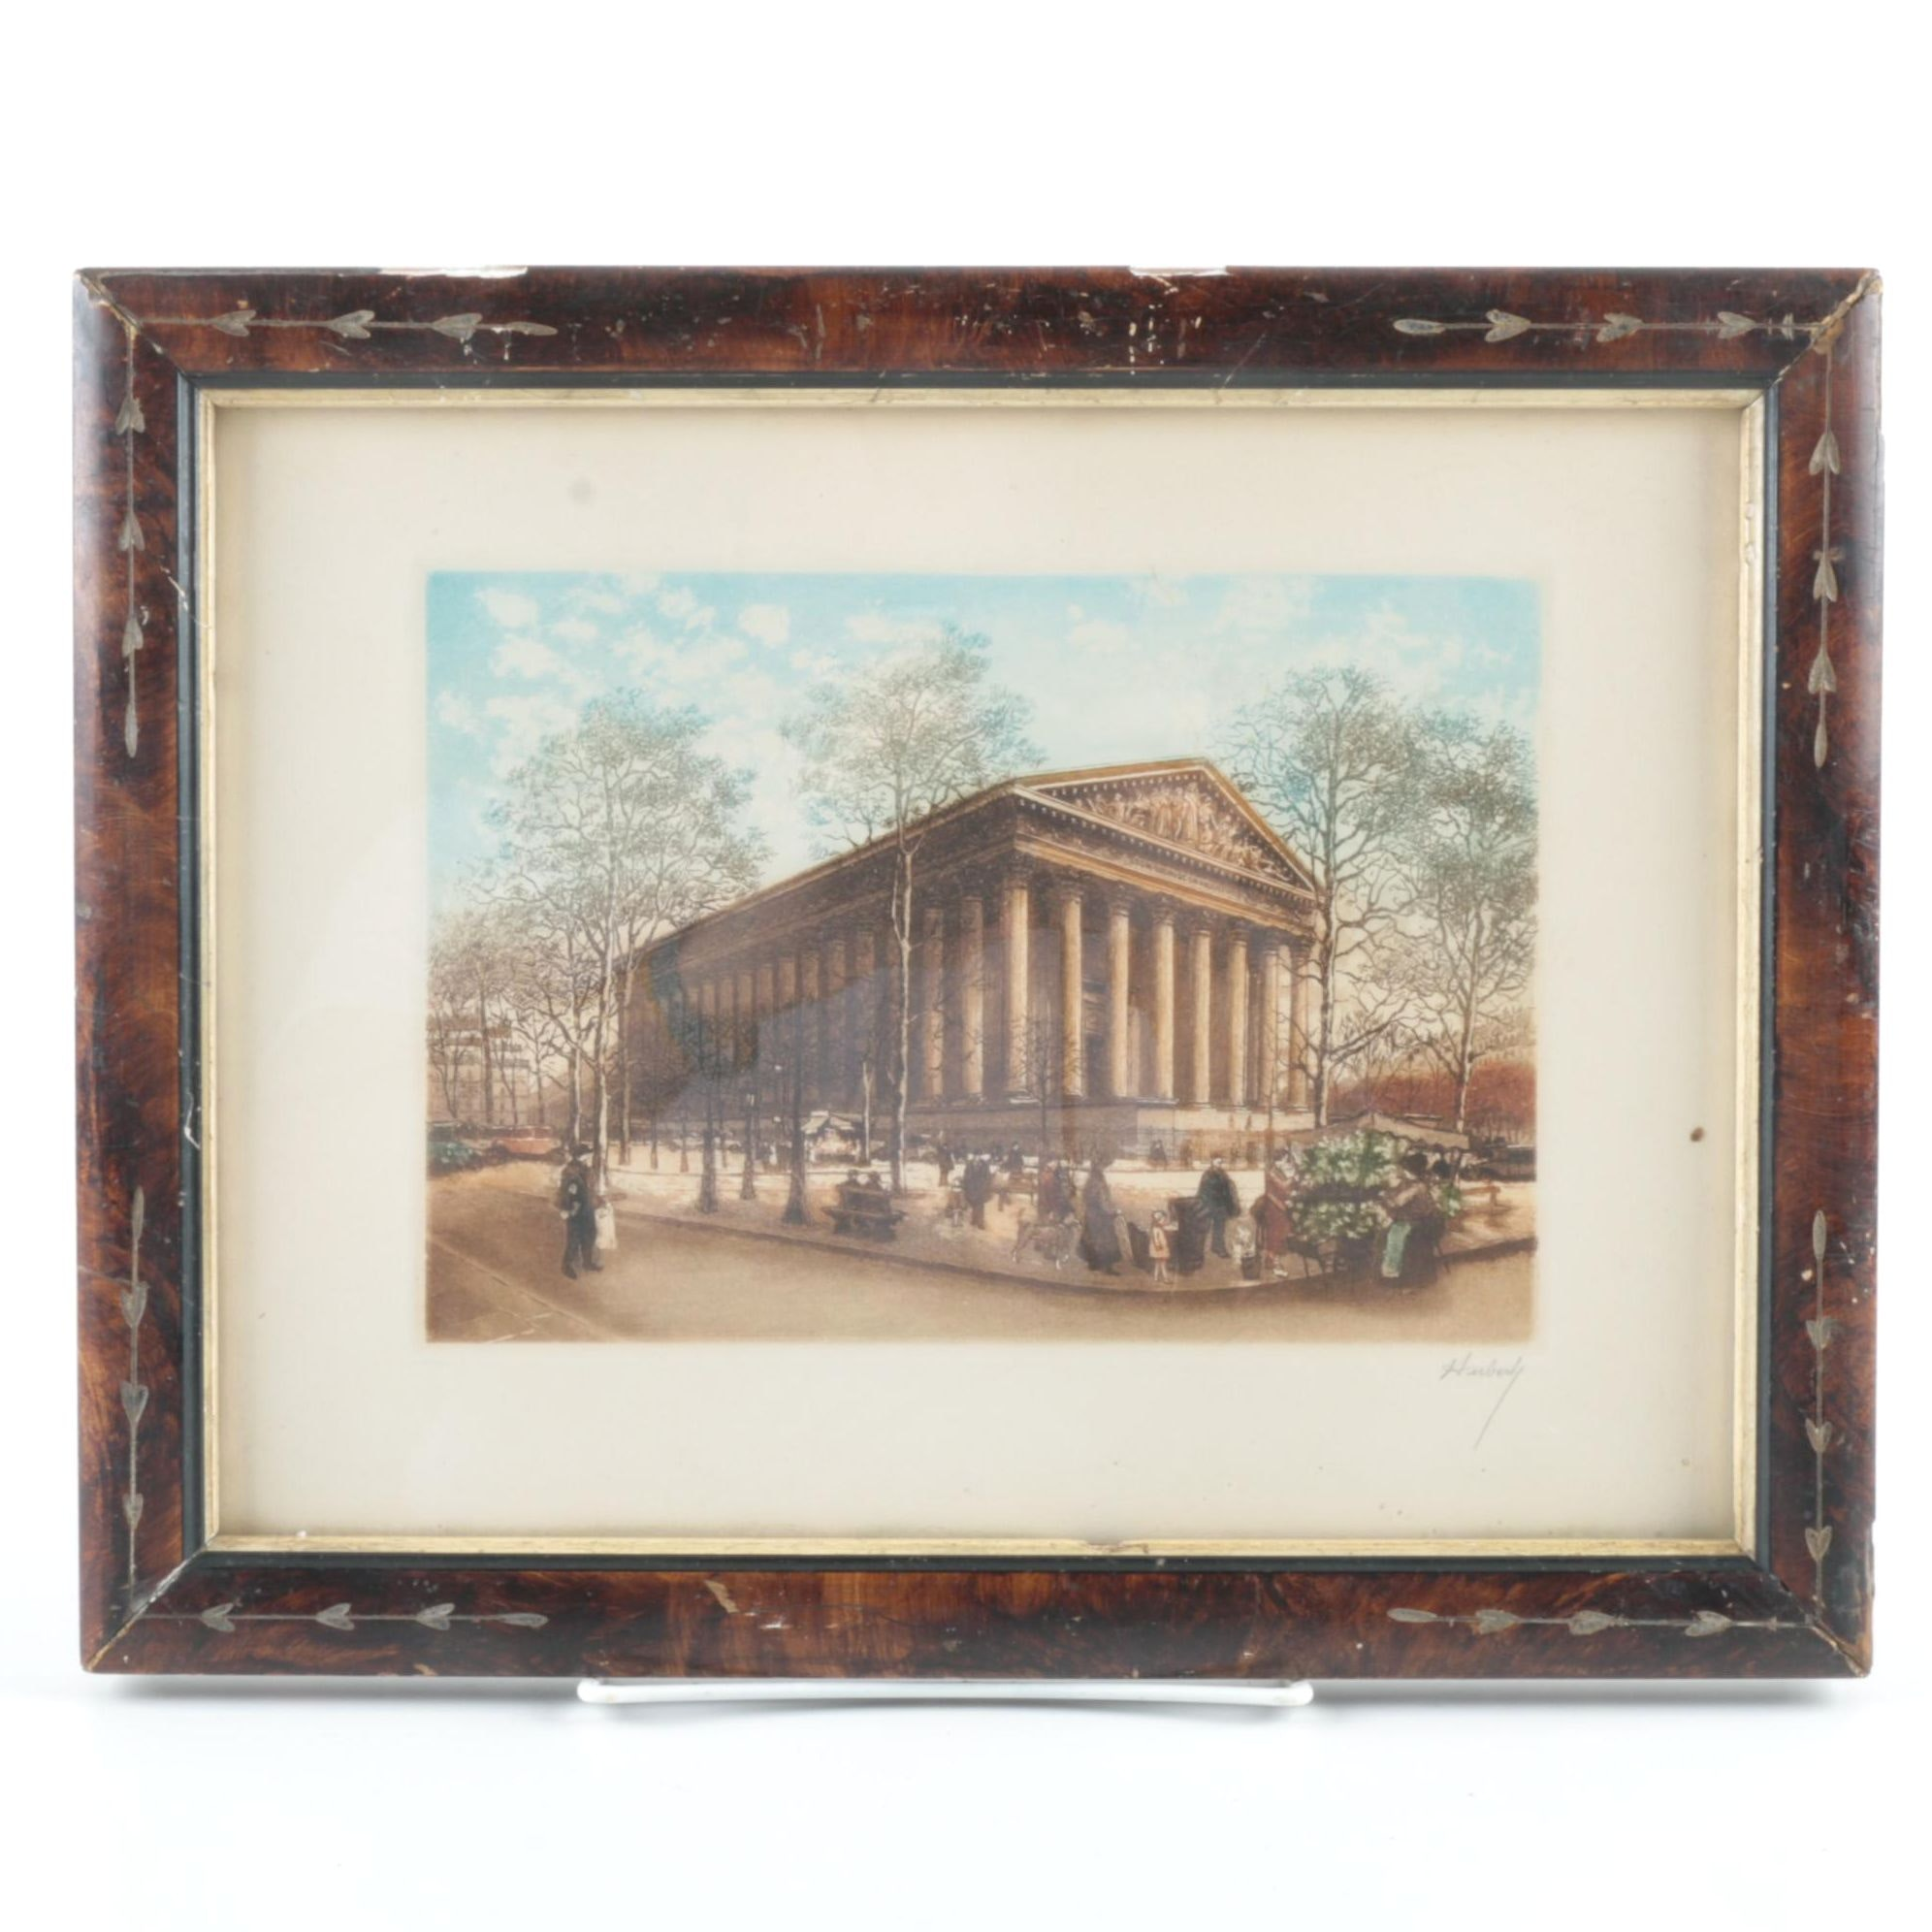 Huberly Aquatint Etching on Paper Classical Architecture Street Scene